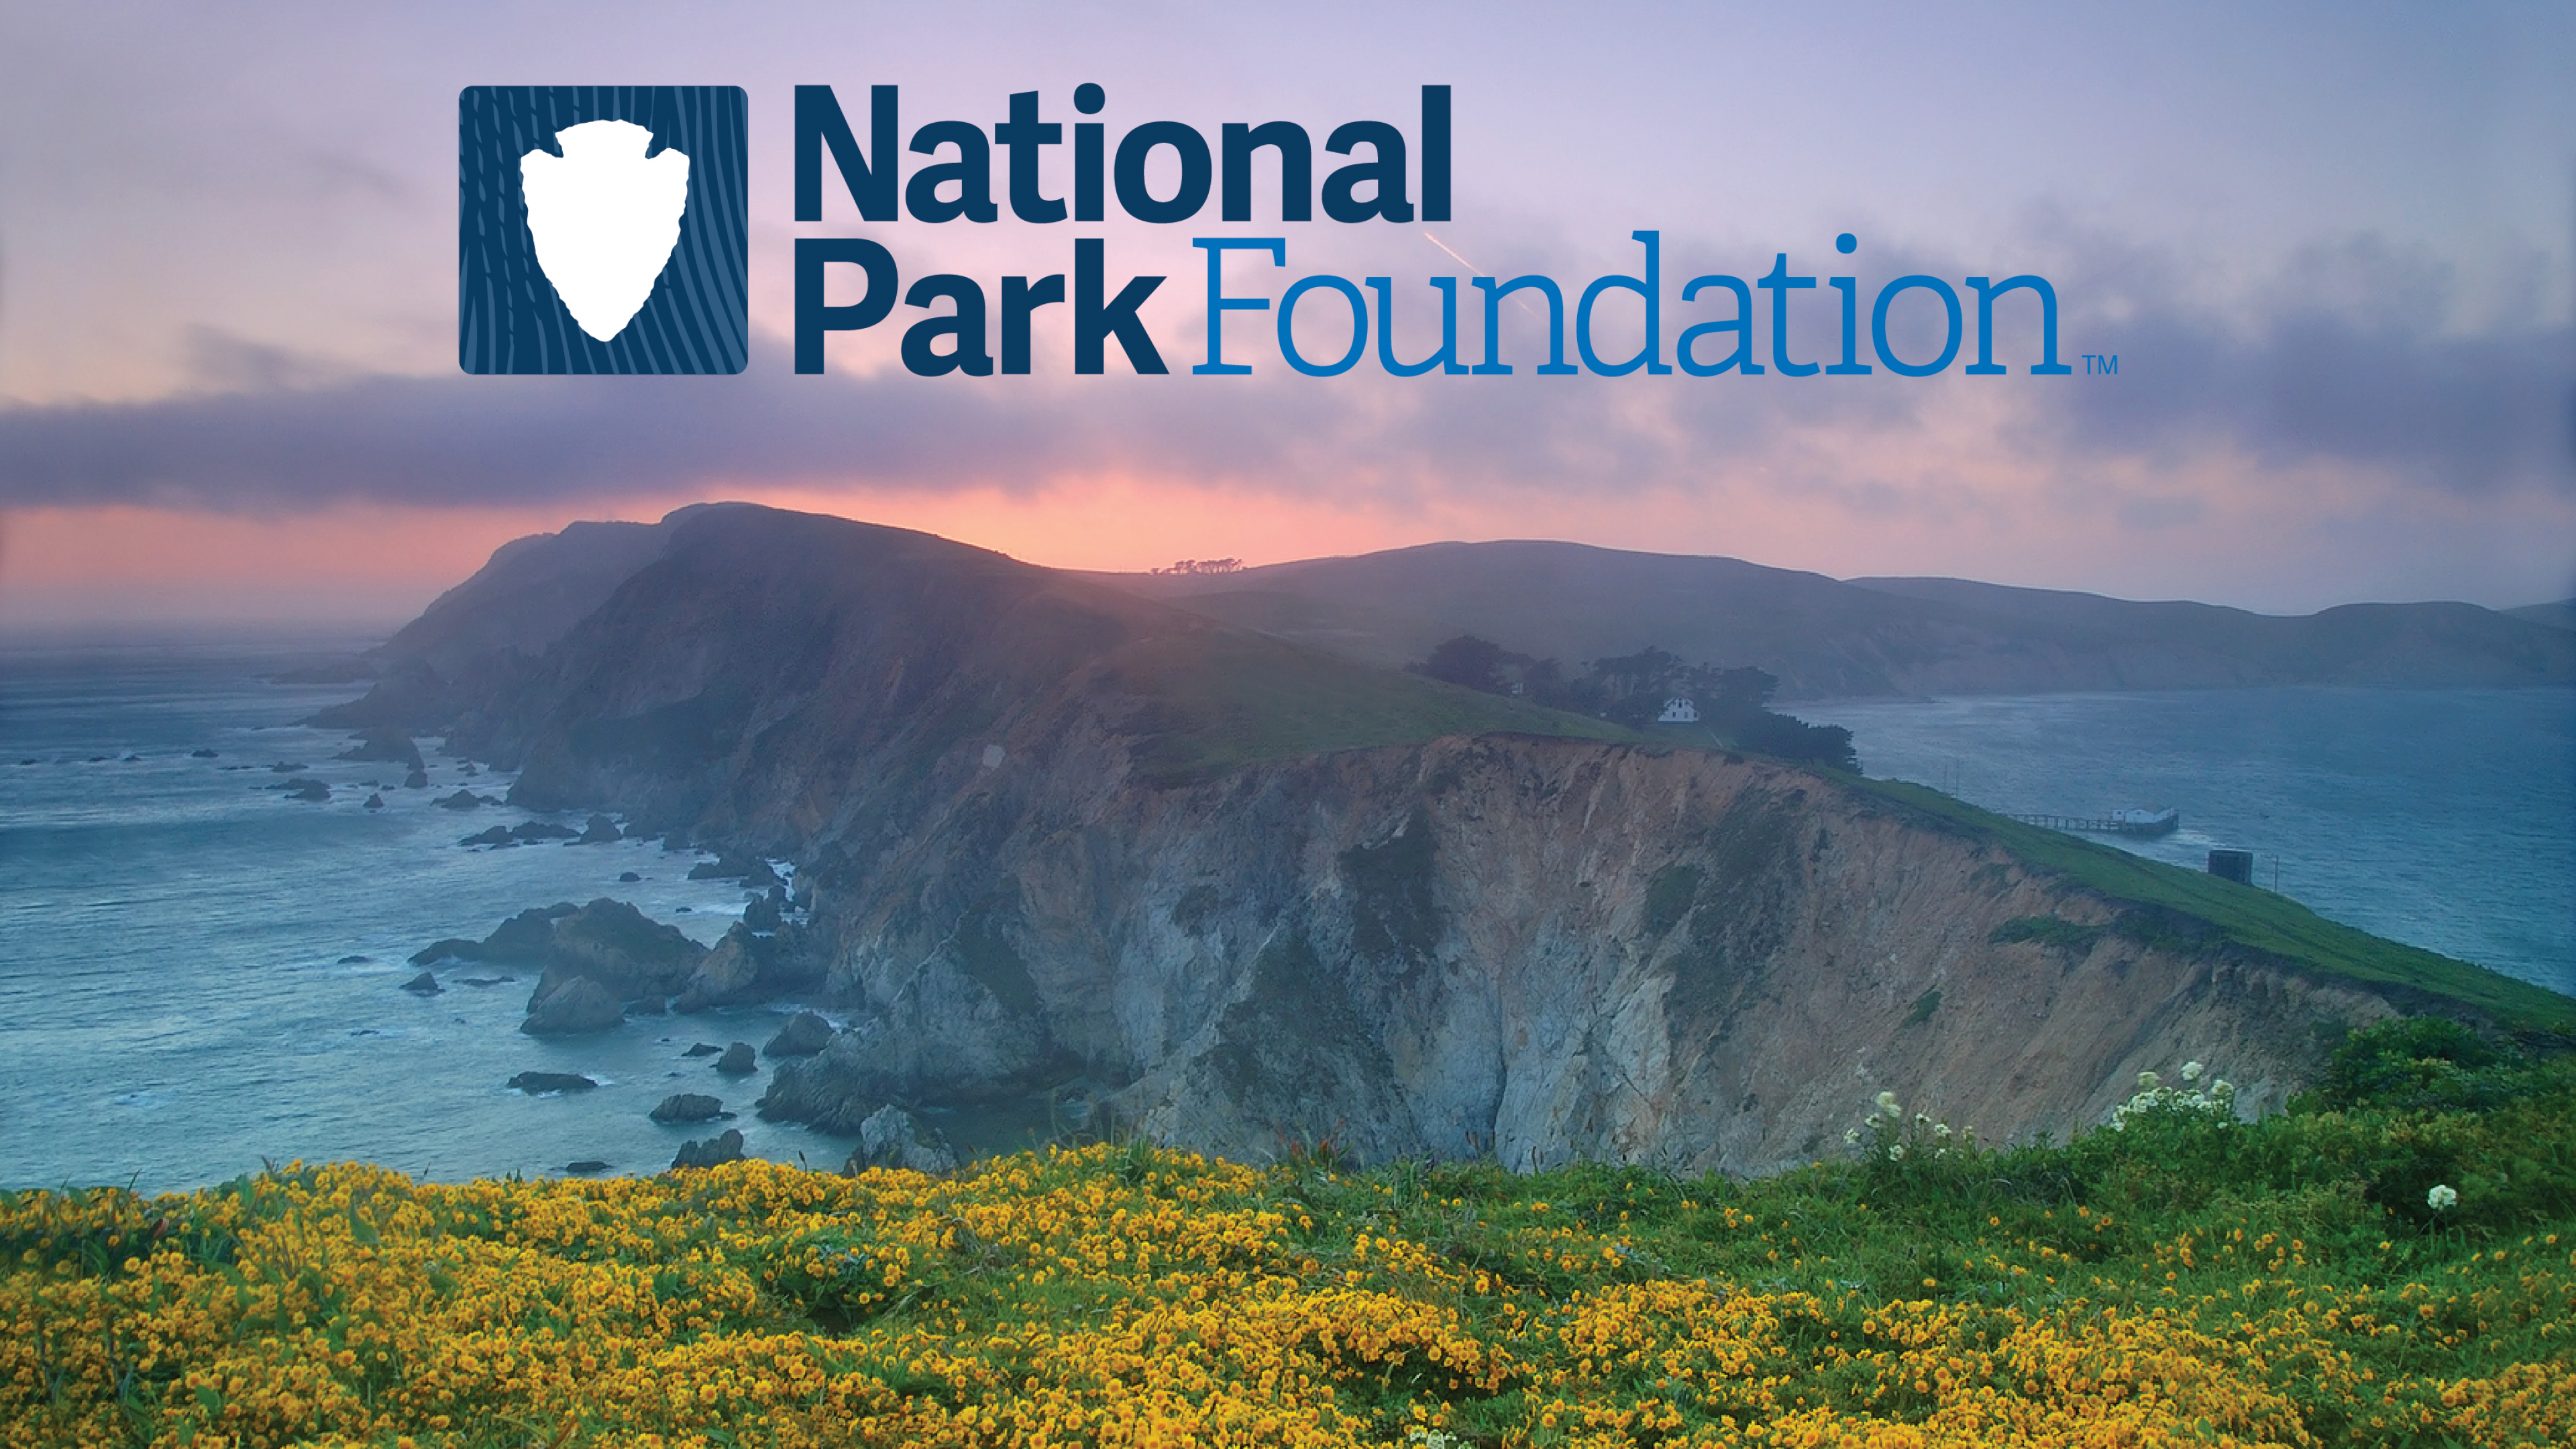 New NPF Logo in front of image of Point Reyes National Seashore